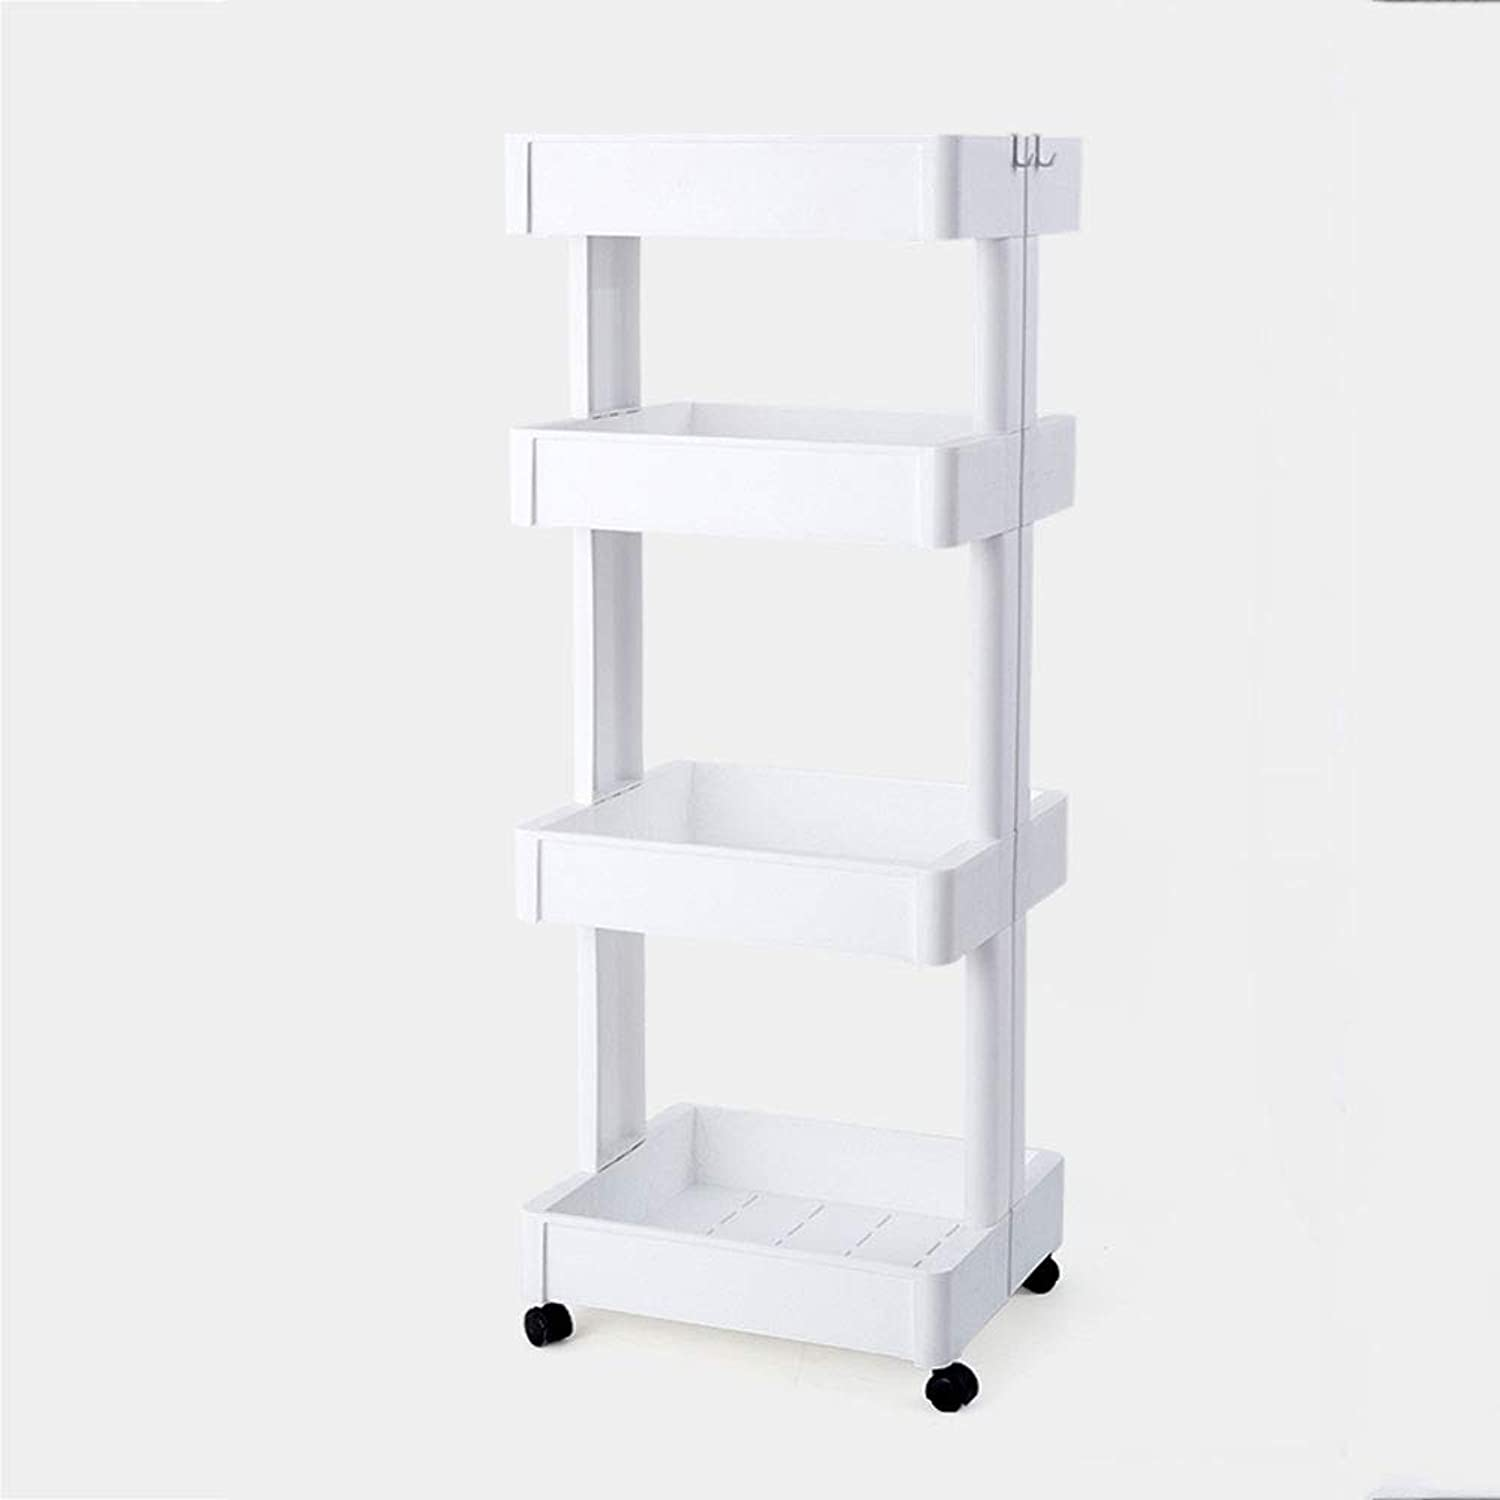 LCTZWJ 3&4-Shelving Unit, Modern Storage Organisation Rack with Side Hooks,Belt Pulley is Movable to The Bathroom, Kitchen, Bedroom, Balcony (color   B, Size   Four Layers)